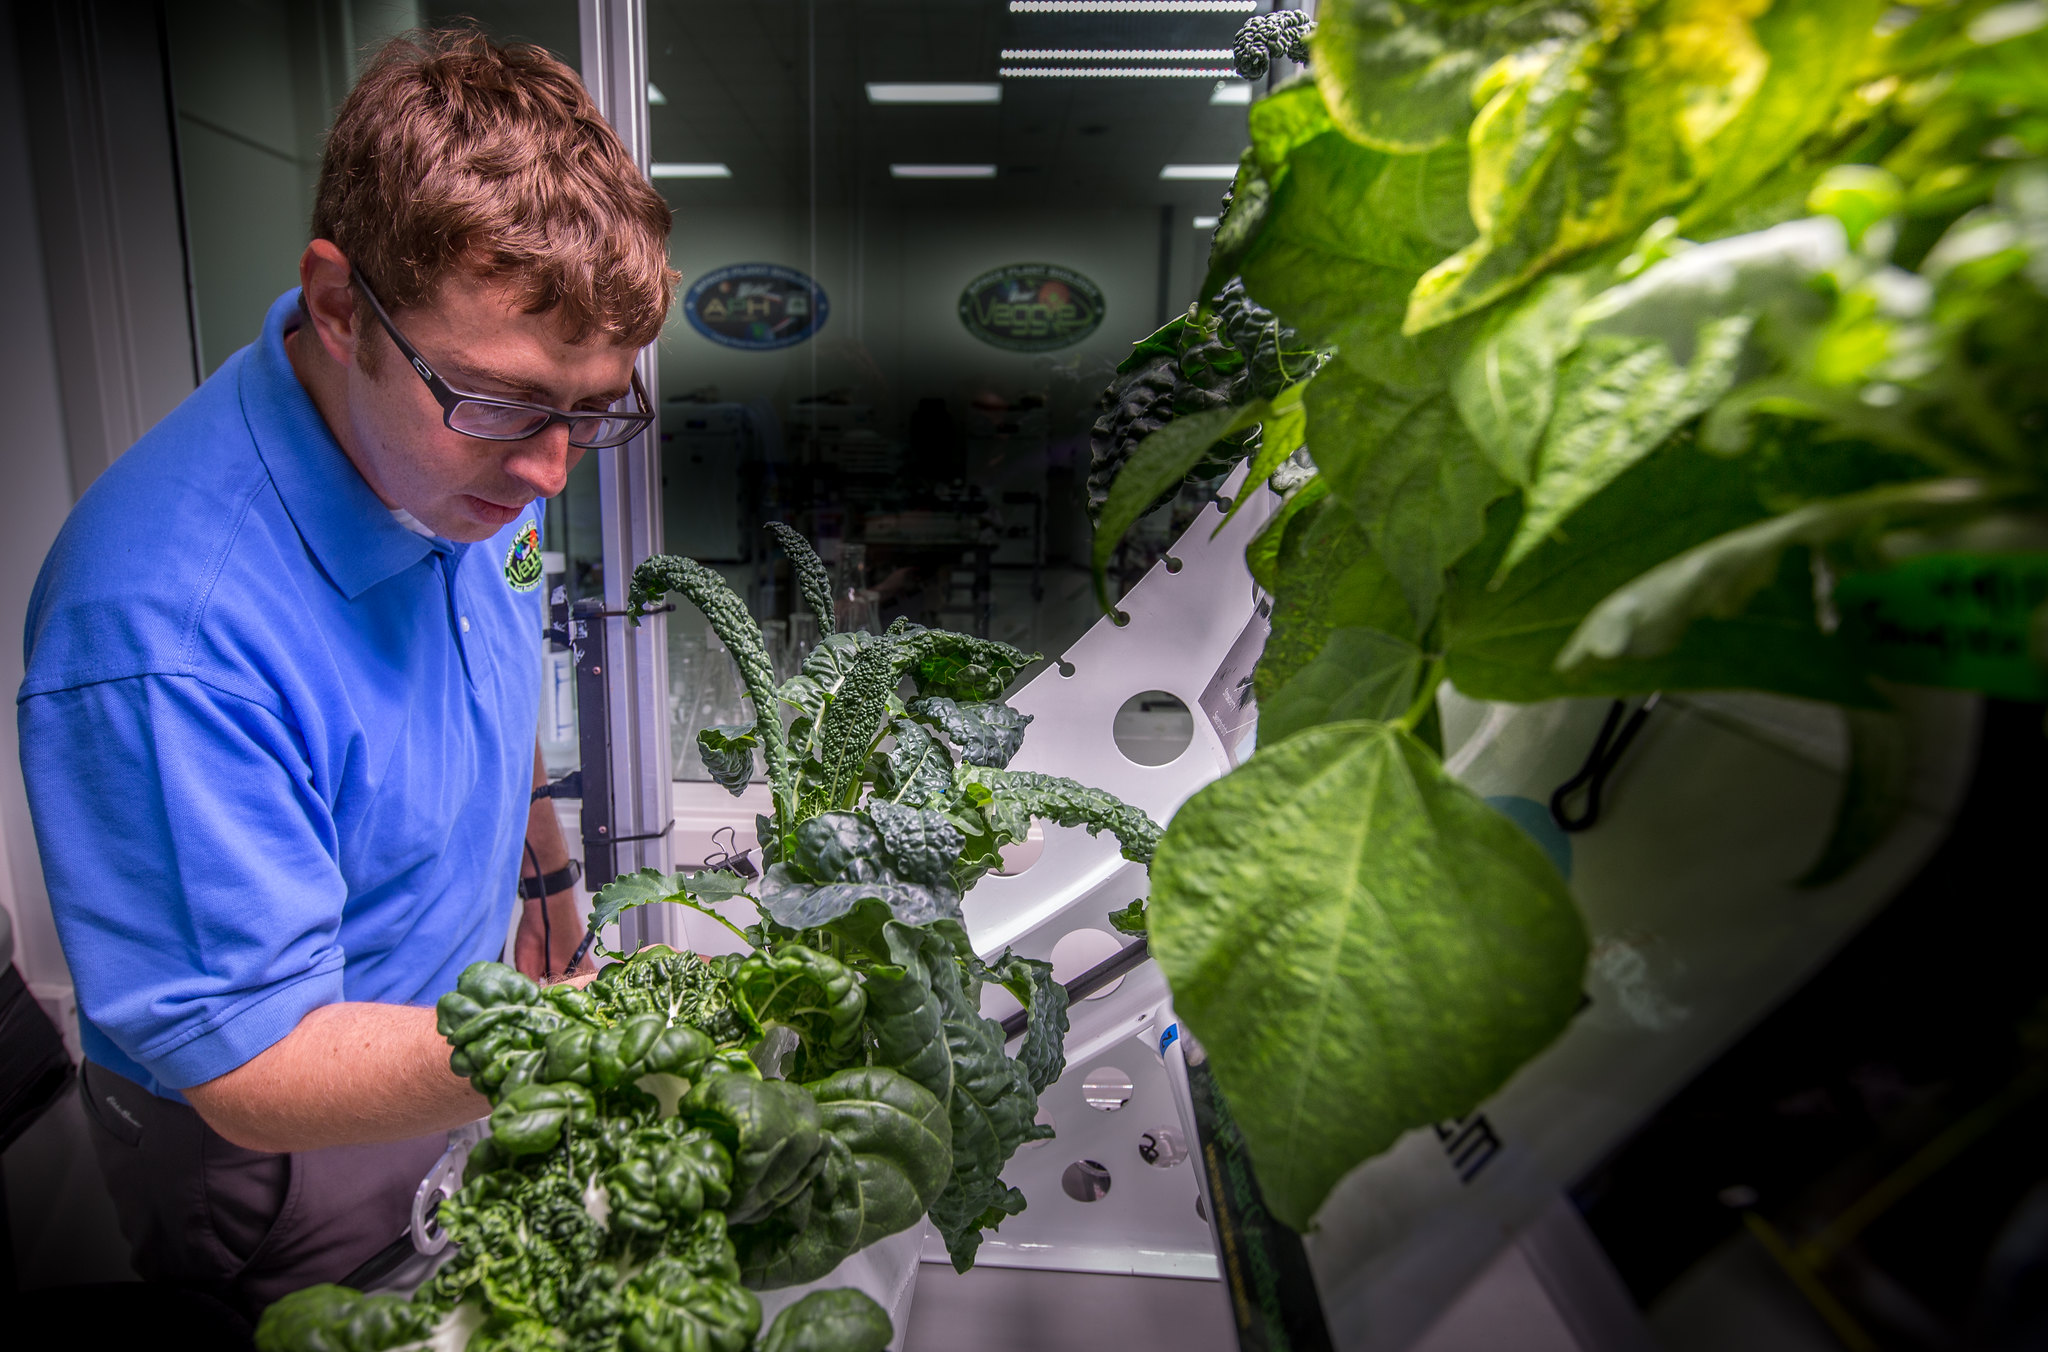 NASA's Matt Romeyn works in the Crop Food Production Research Area of the Space Station Processing Facility at the agency's Kennedy Space Center in Florida.